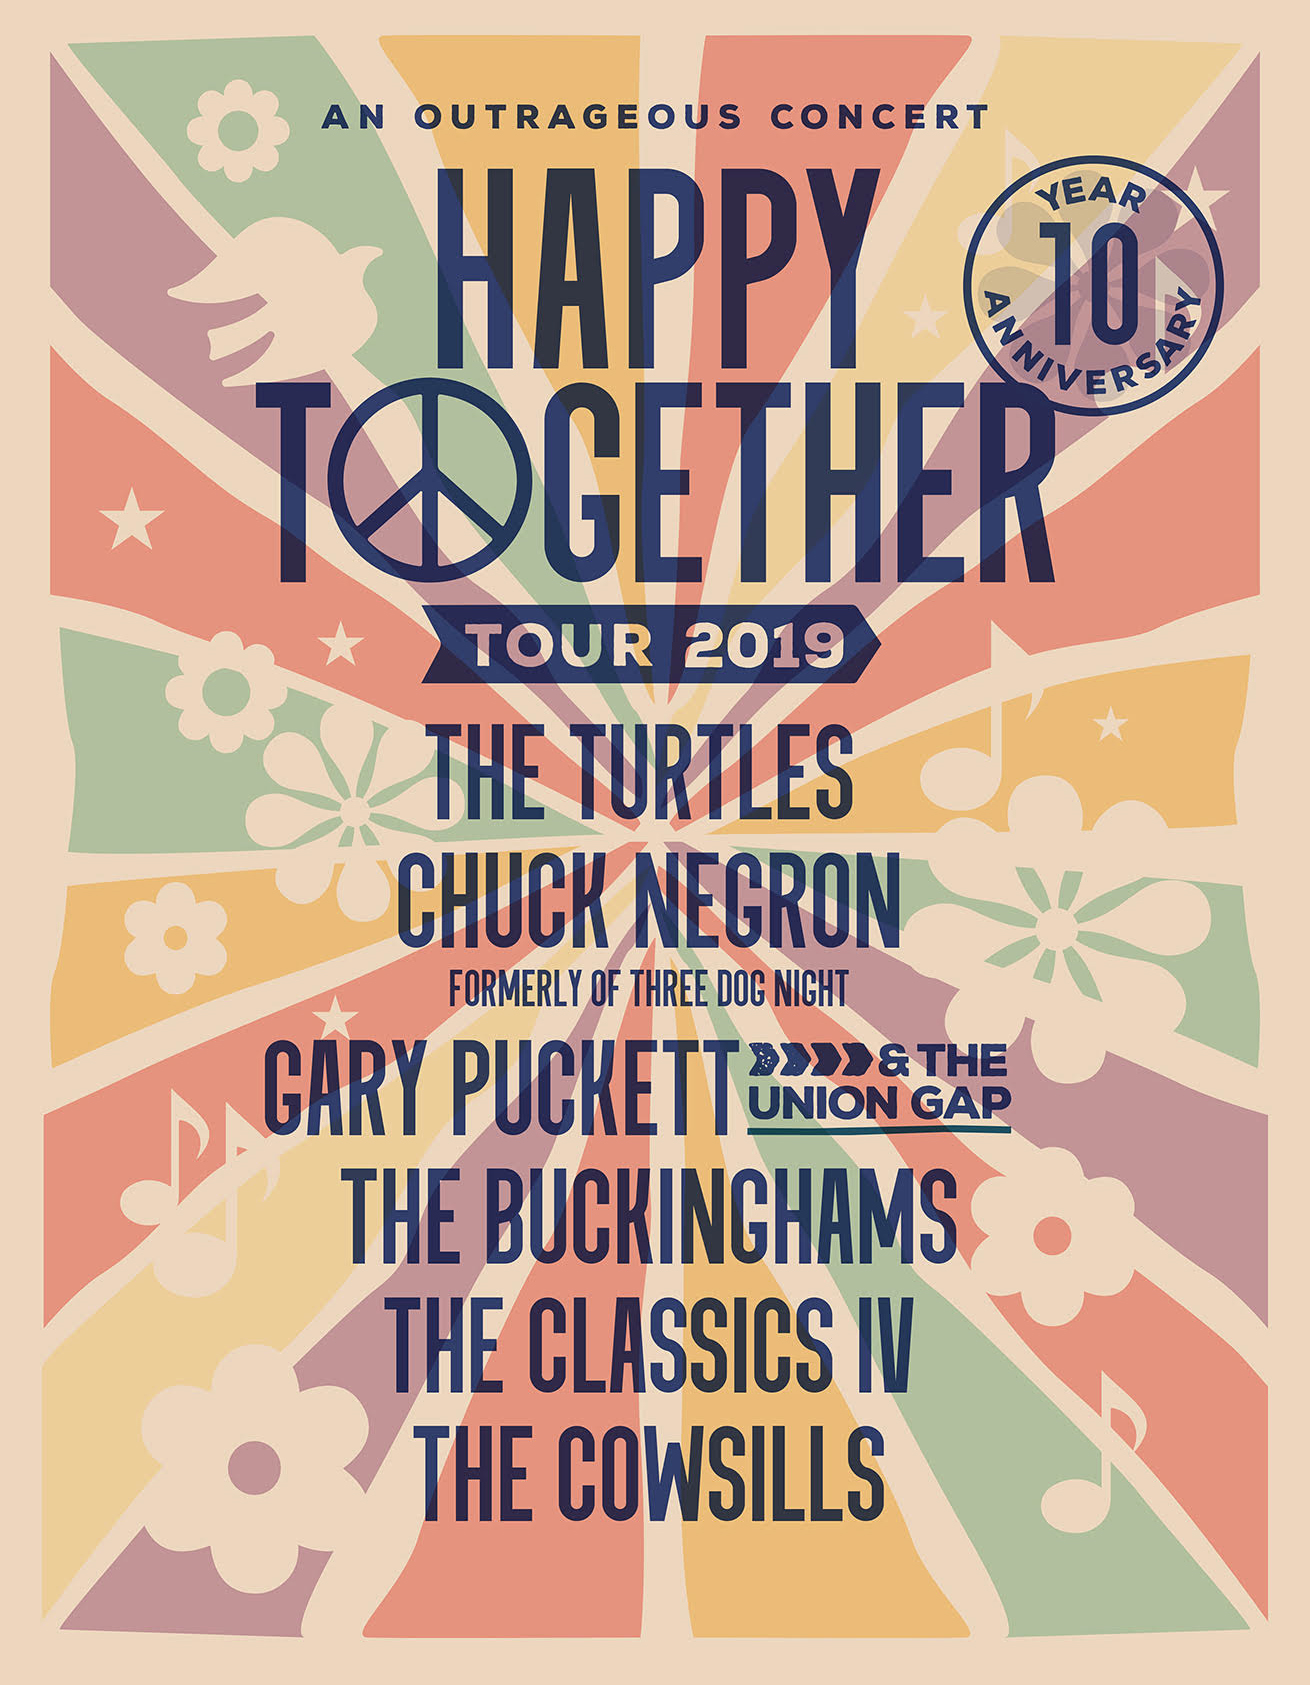 JUNE 21, 2019 - HAPPY TOGETHER RETURNS TO THE PARAMOUNT THEATRE IN ASBURY PARK!A BENEFIT CONCERT FOR THE LIGHT OF DAY FOUNDATIONON SALE NOW!! The Greatest Pop Rock Hits of the 60's-70's!The audience will go home whistling the soundtrack their lives!THE TURTLESCHUCK NEGRON (Former lead vocalist of Three Dog Night)GARY PUCKETT AND THE UNION GAPTHE BUCKINGHAMSTHE CLASSICS IVTHE COWSILLSDoors: 7pm - Show: 8pmProduced by UMTPresents, Sammy Boyd Productions and Madison Marquette for the LODF, a 501 C3 Non-profit Org.